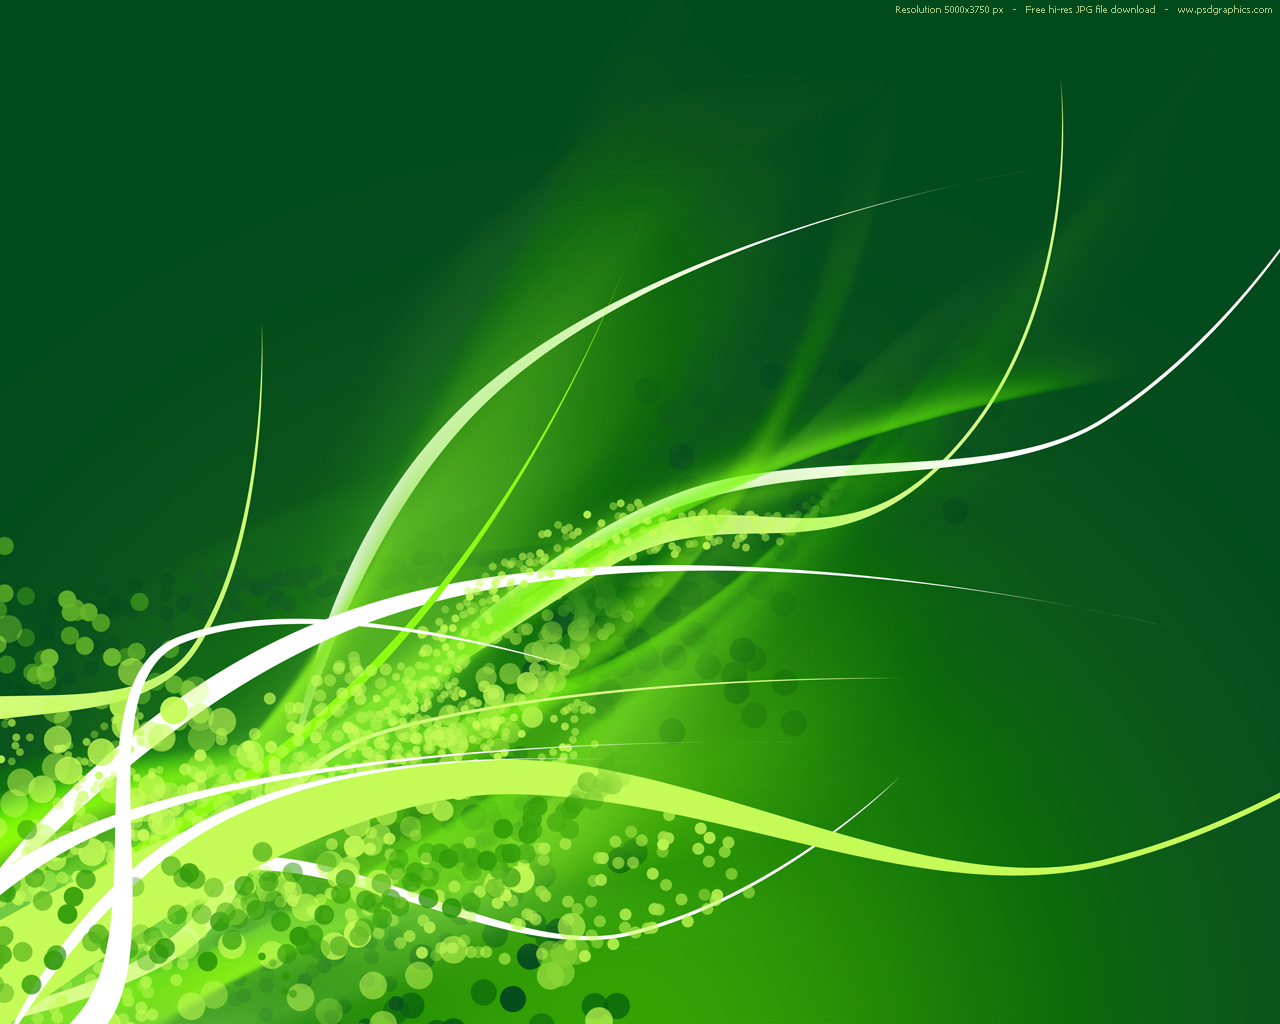 Abstract artwork background PSDGraphics 1280x1024